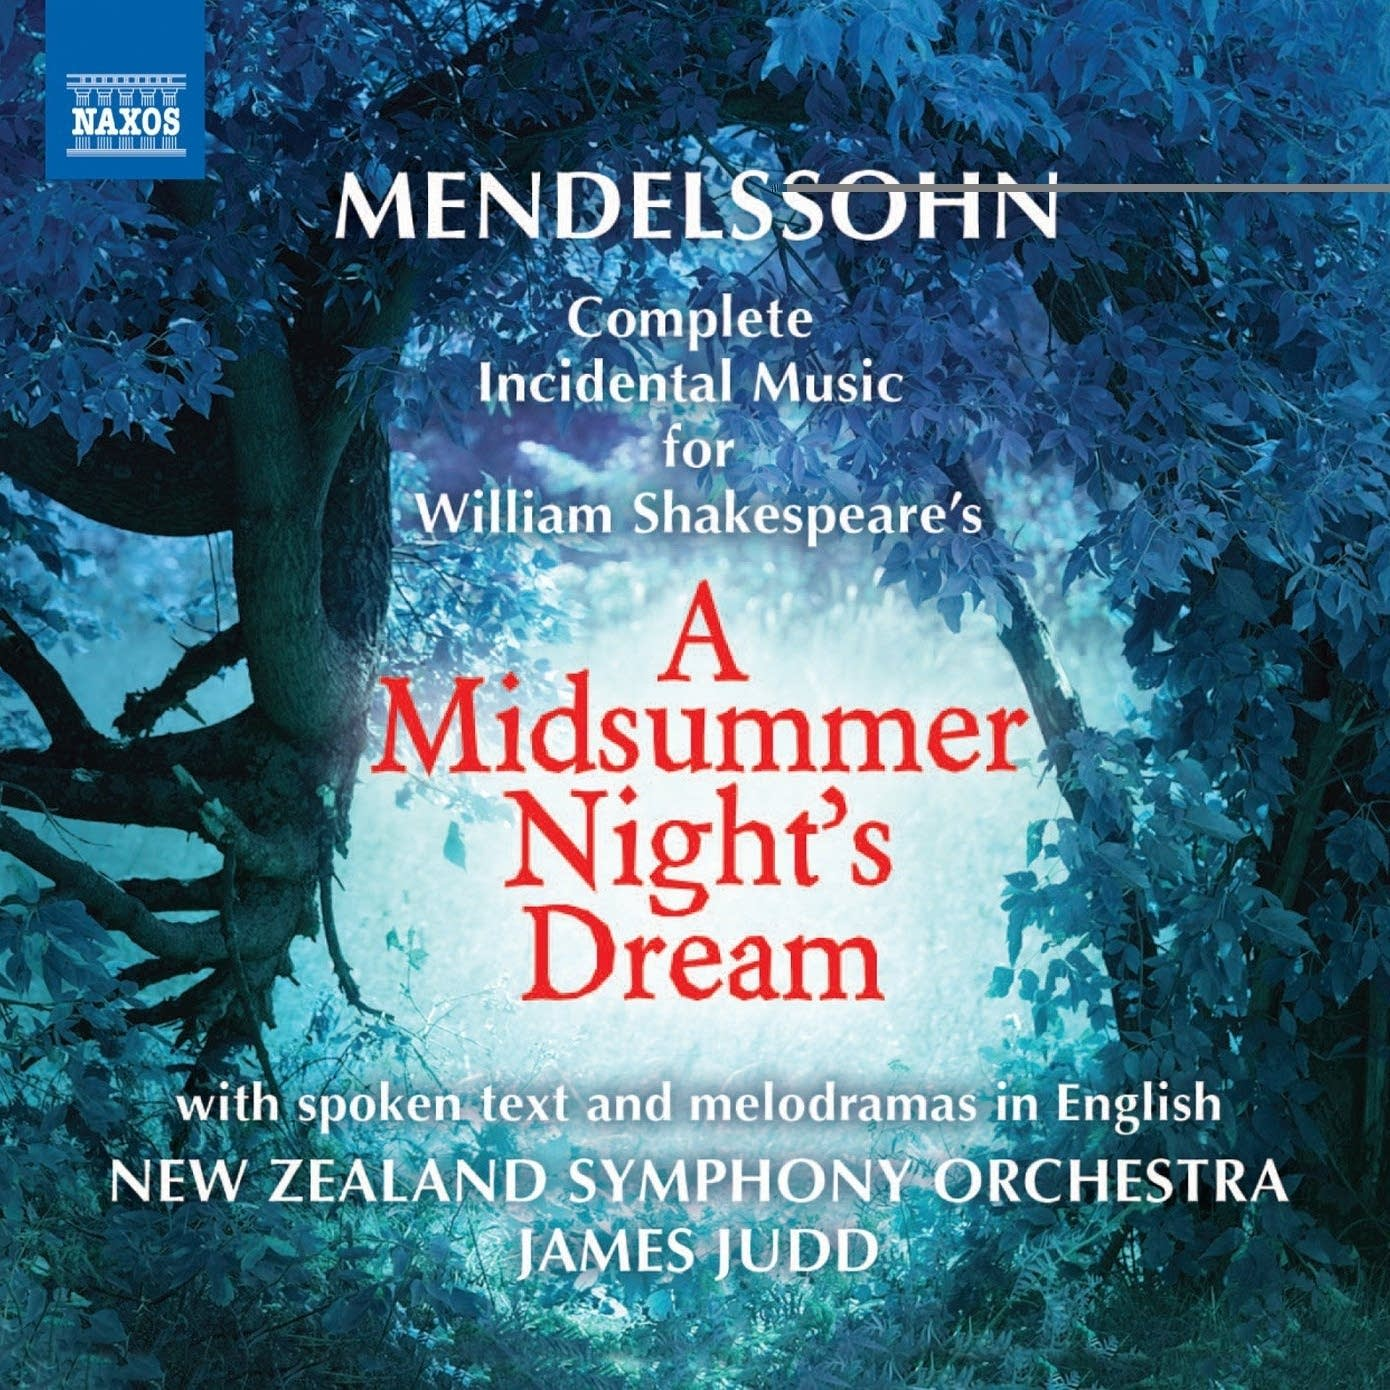 https://img.apmcdn.org/94f2030ffa74067c6092675be20c36e674f4c292/square/1221b5-20160703-felix-mendelssohn-a-midsummer-night-s-dream.jpg